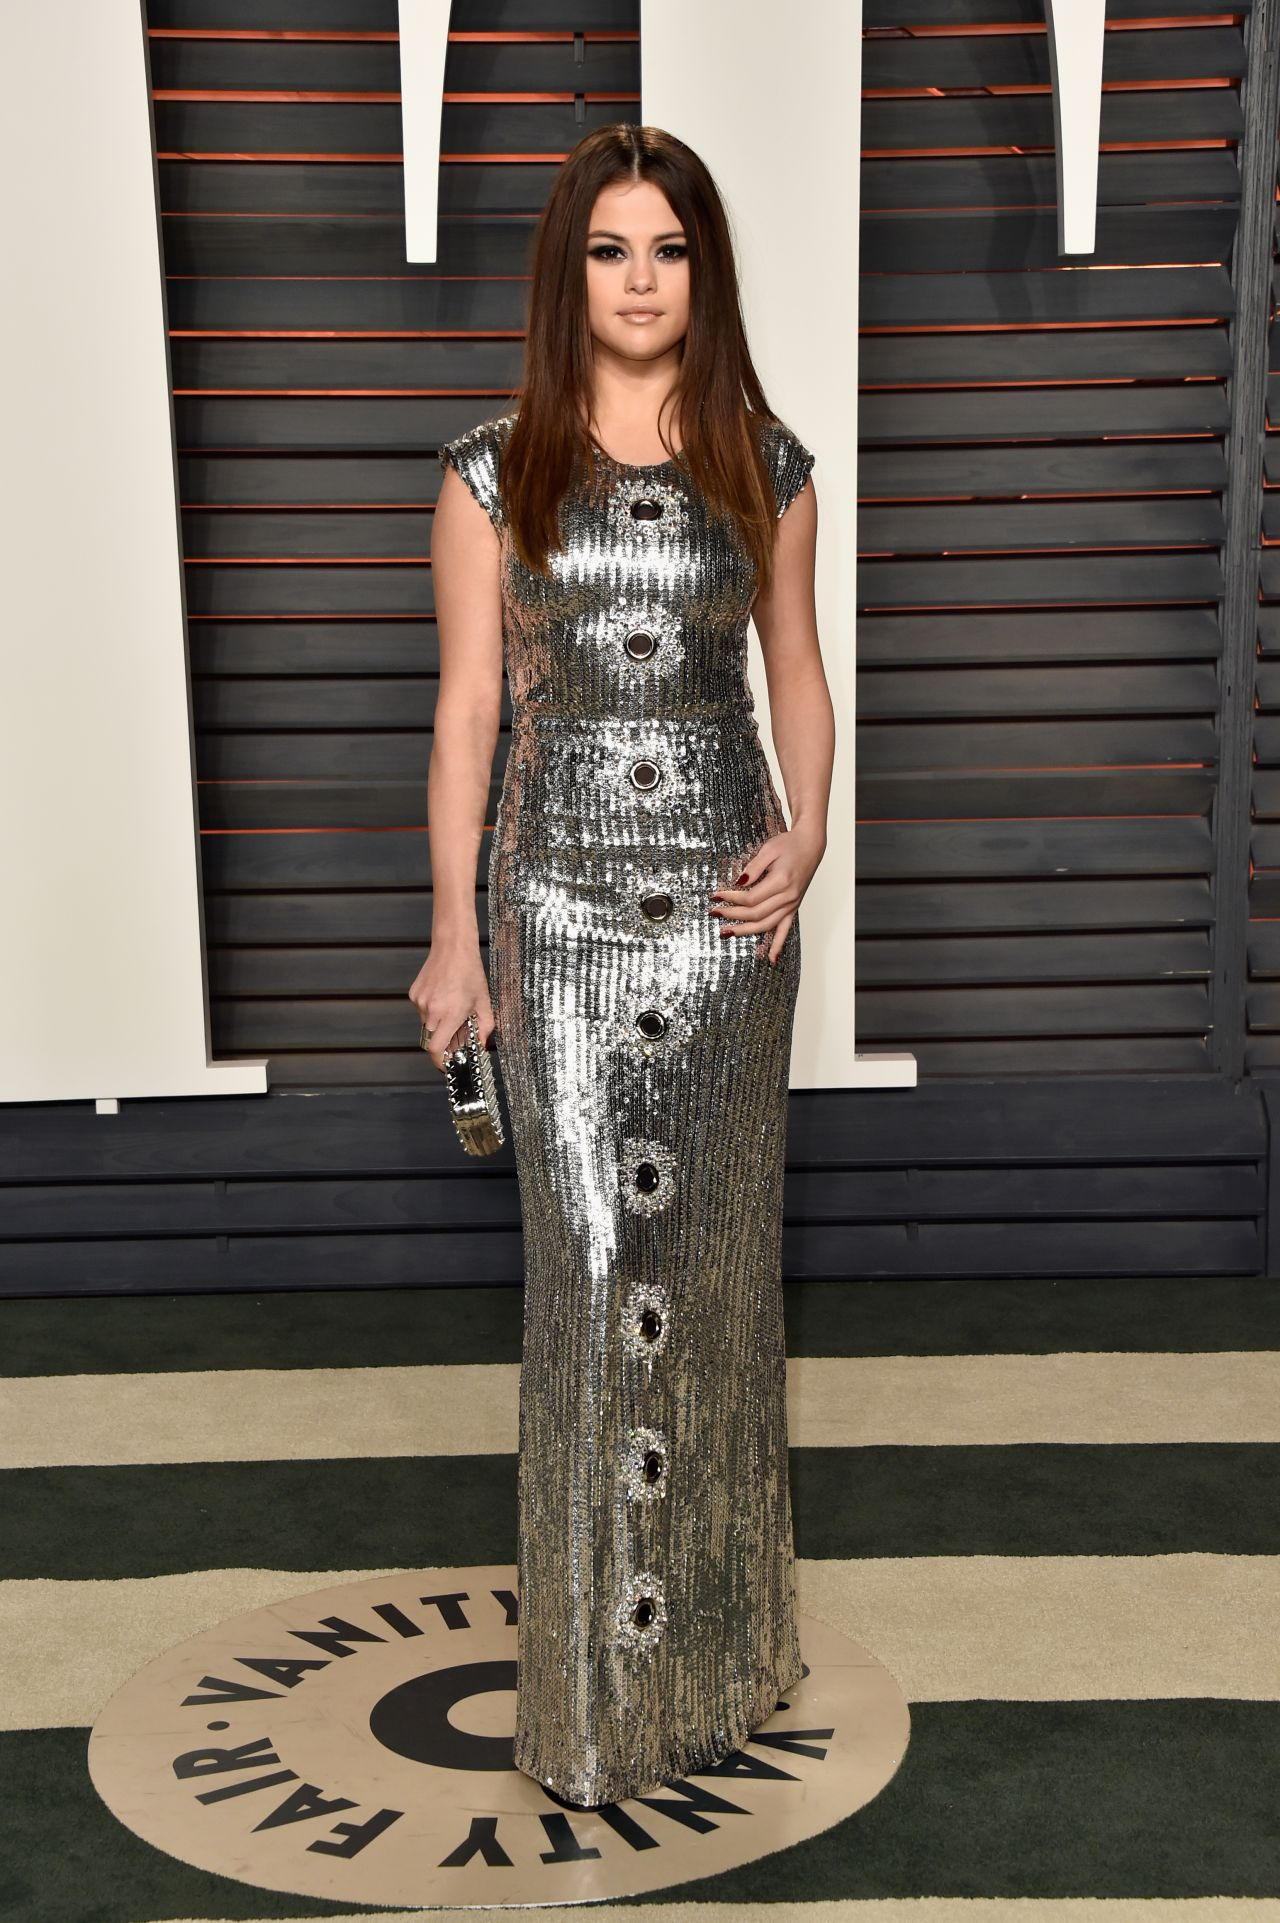 selena-gomez-vanity-fair-oscar-2016-party-in-beverly-hills-ca-5